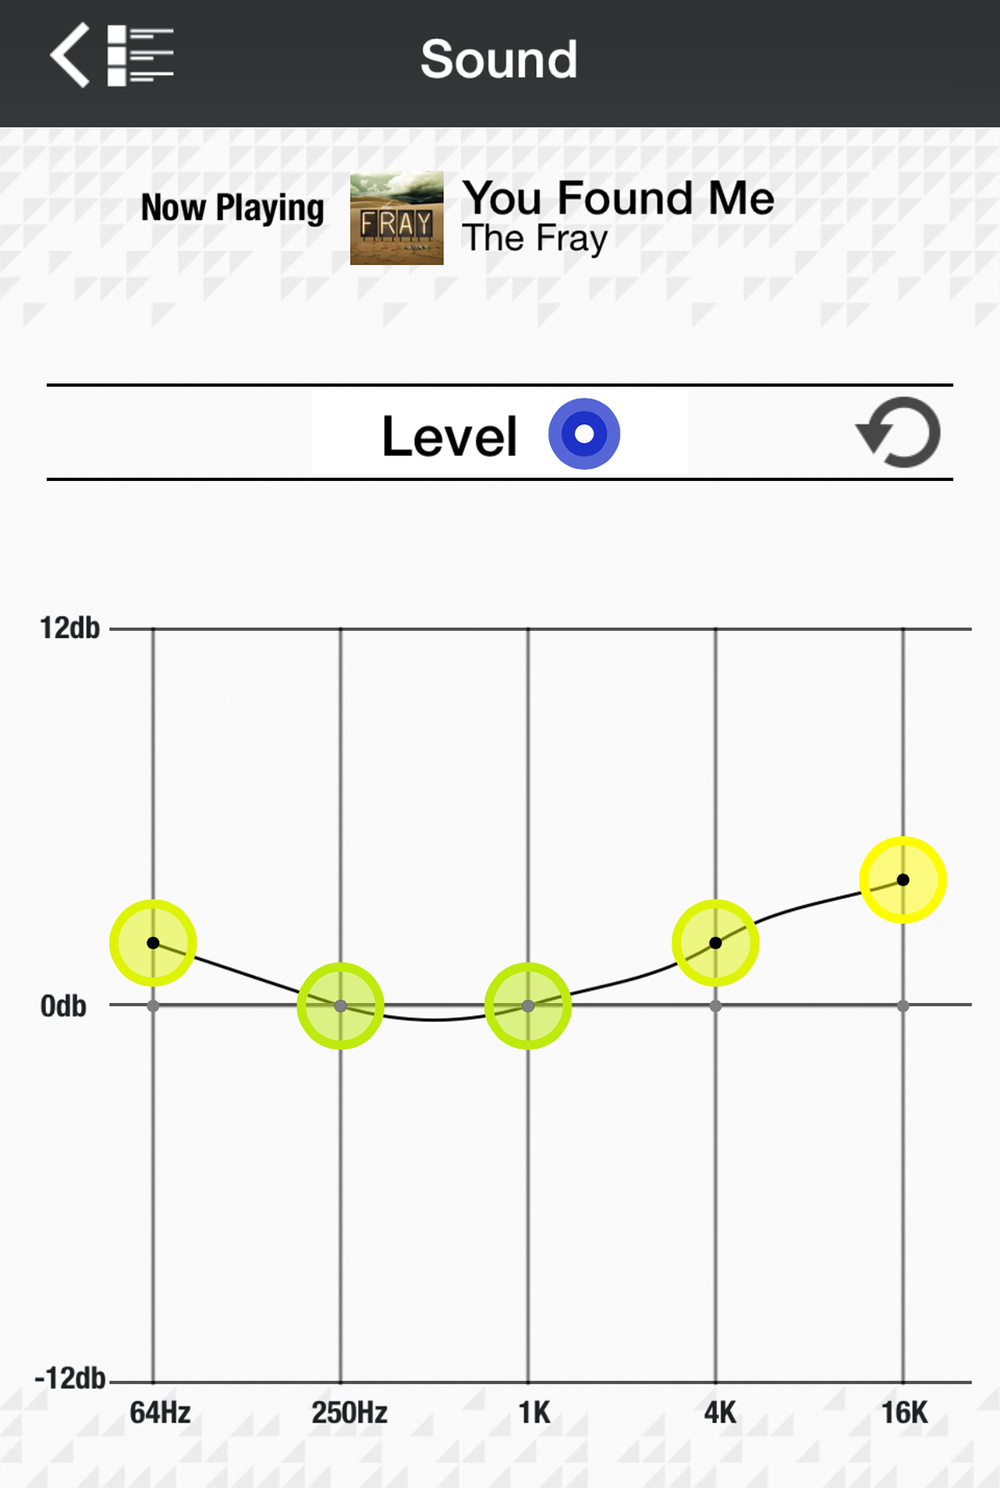 alpine-level-play-ios-app-eq-bass-settings.png